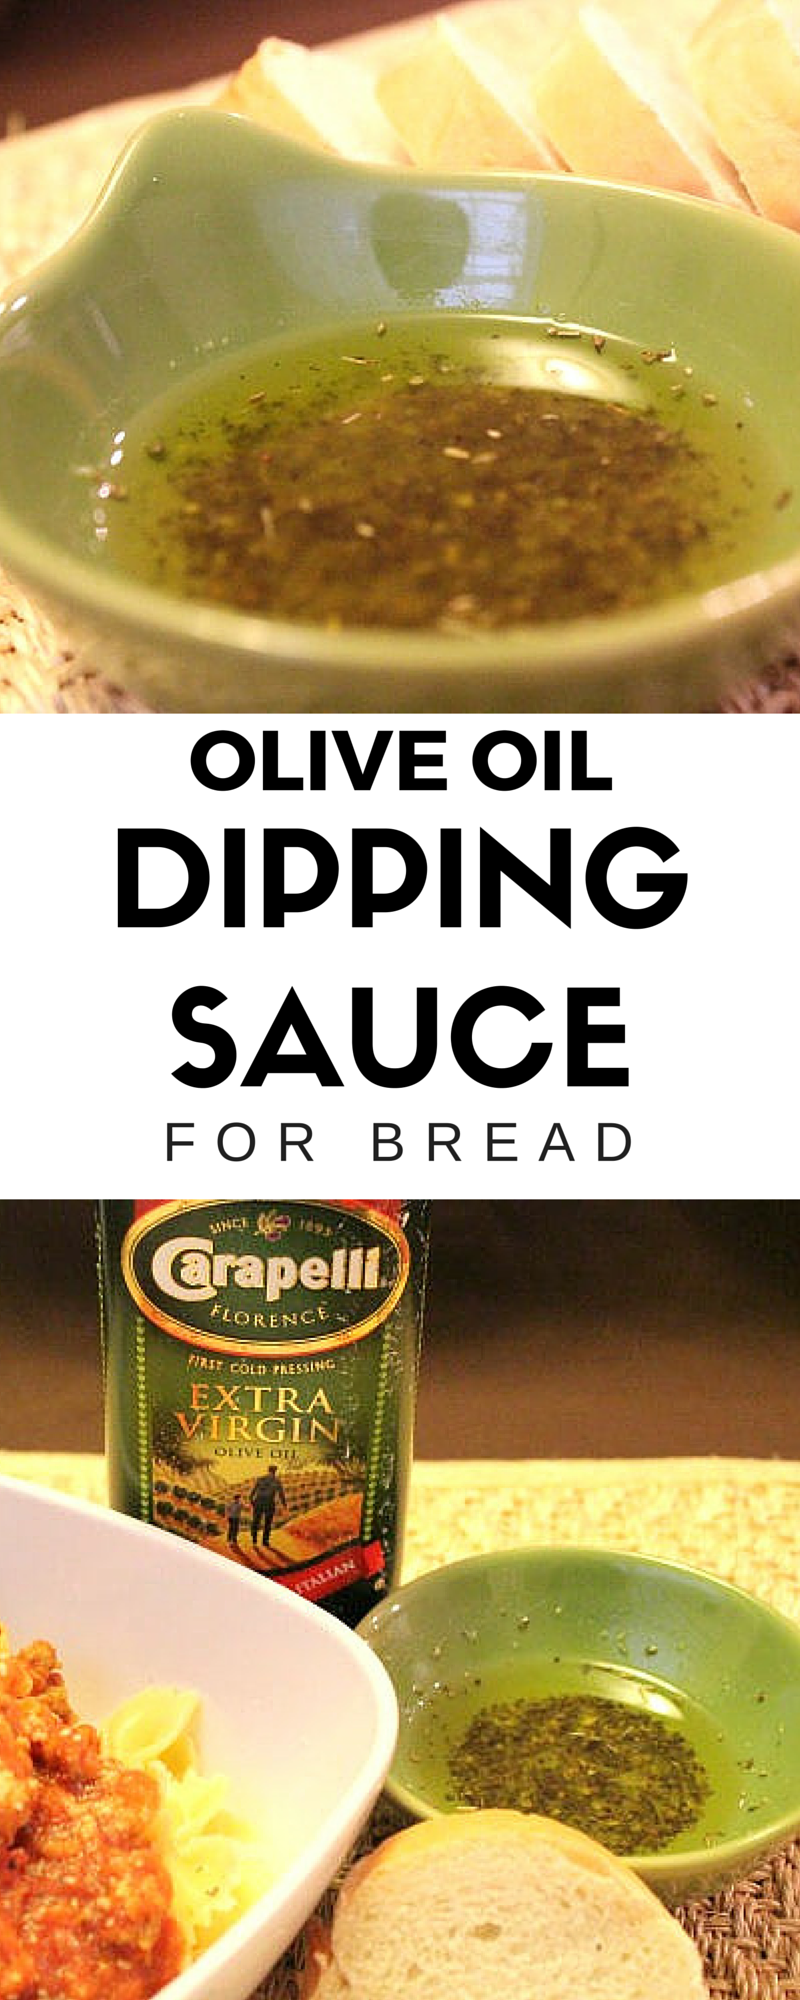 Olive Oil Dipping Sauce // serve with fresh baked bread and a piping hot bowl of spaghetti for a perfect weeknight dinner at home.